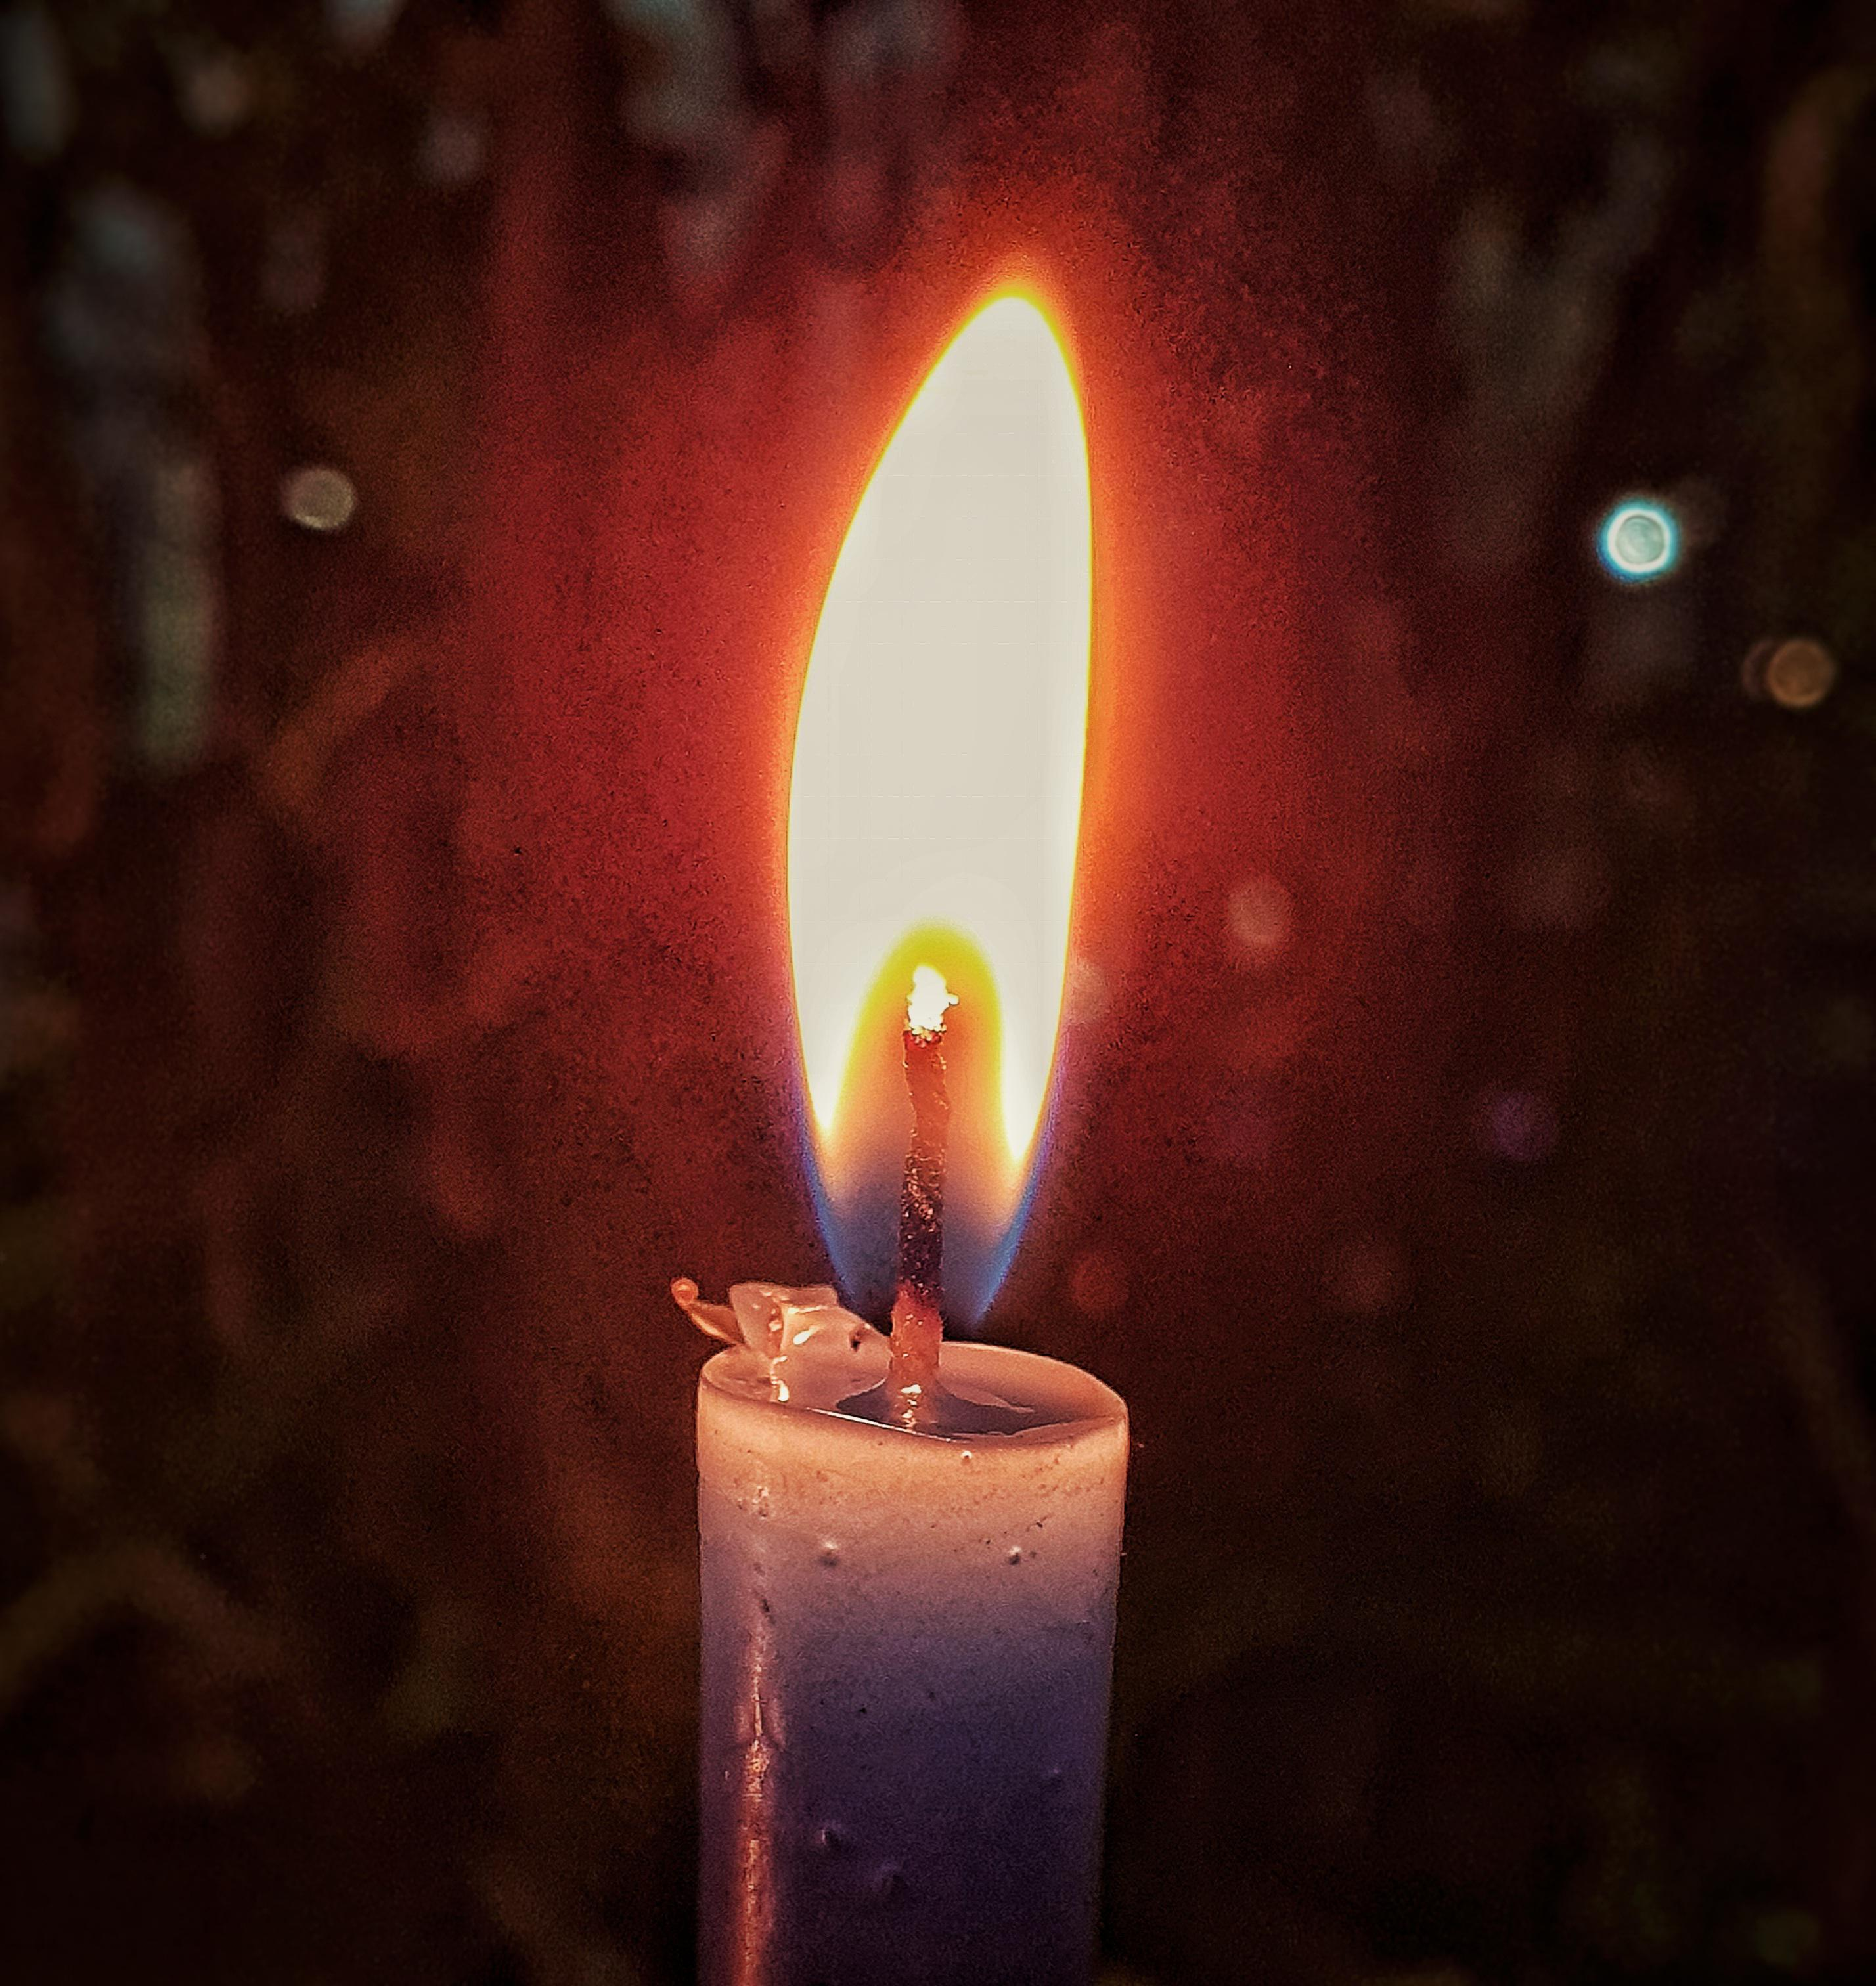 Candle 4k Wallpapers For Your Desktop Or Mobile Screen Free And Easy To Download